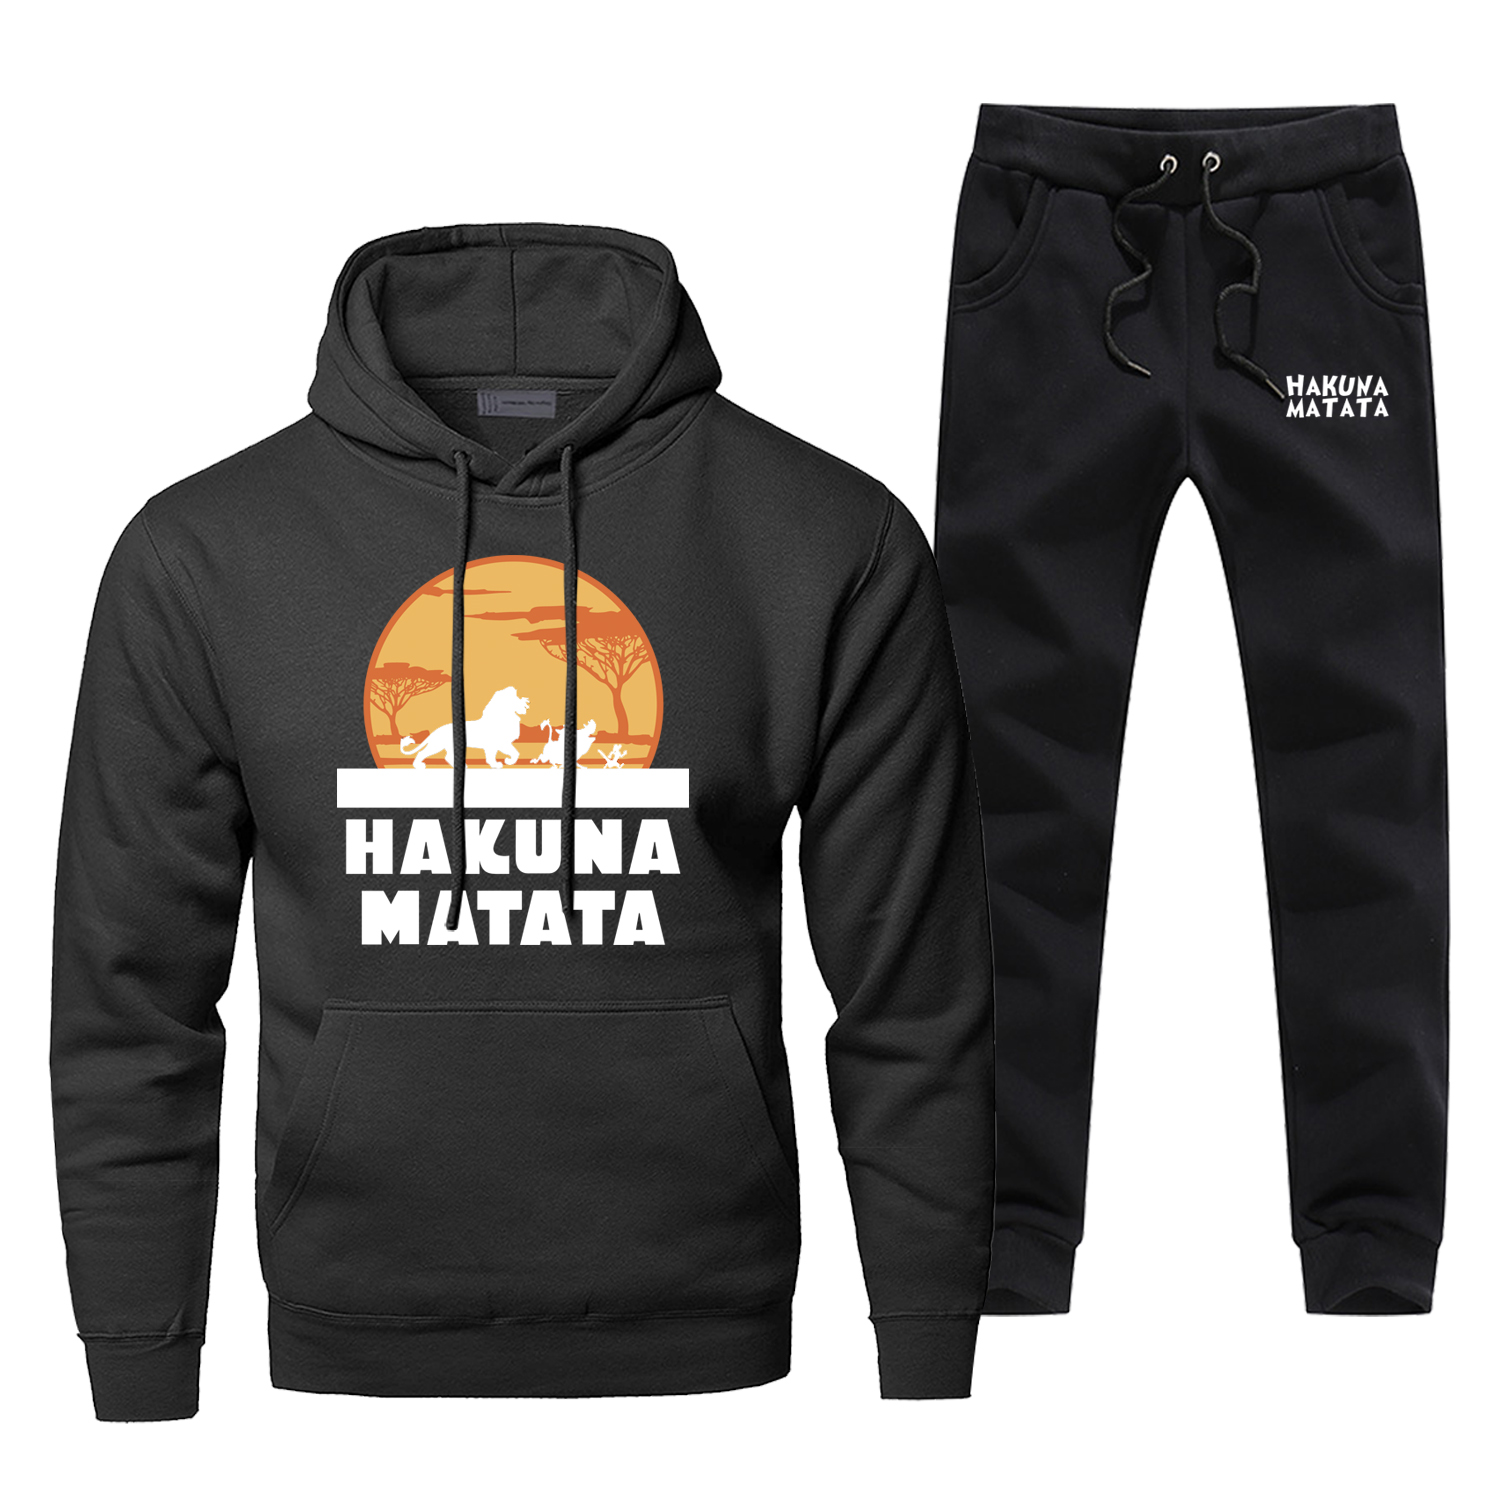 Hakuna Matata Print Hoodies Set The Lion King Smiba Cartoon Sweatpants 2019 New Arrival Fitness Gym Suit Casual Fashion Male Set